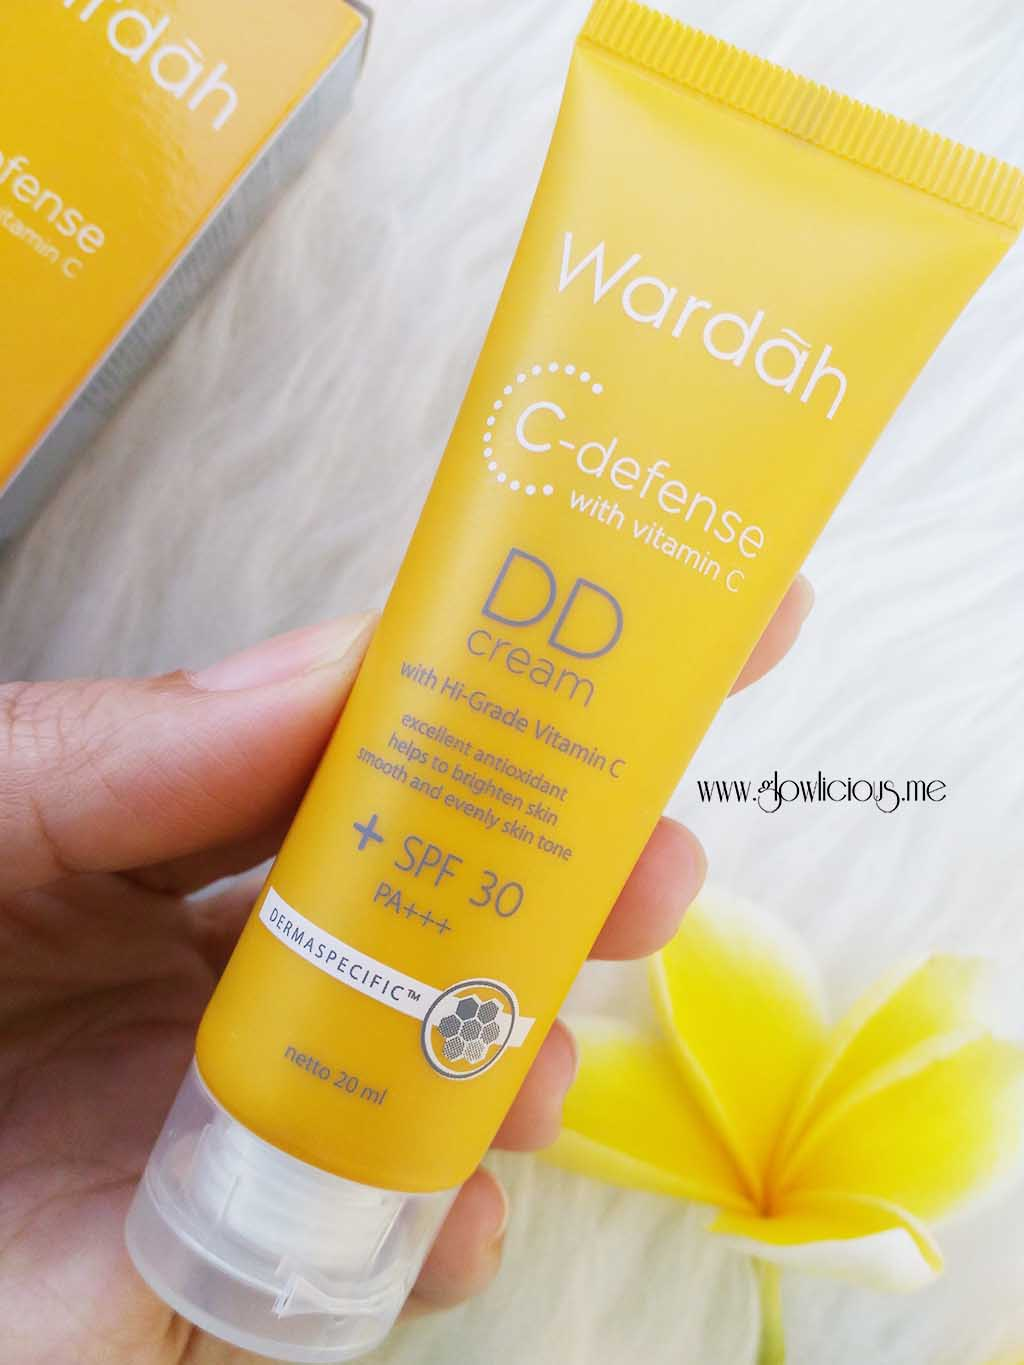 Wardah C-defence DD Cream in Light Shade.